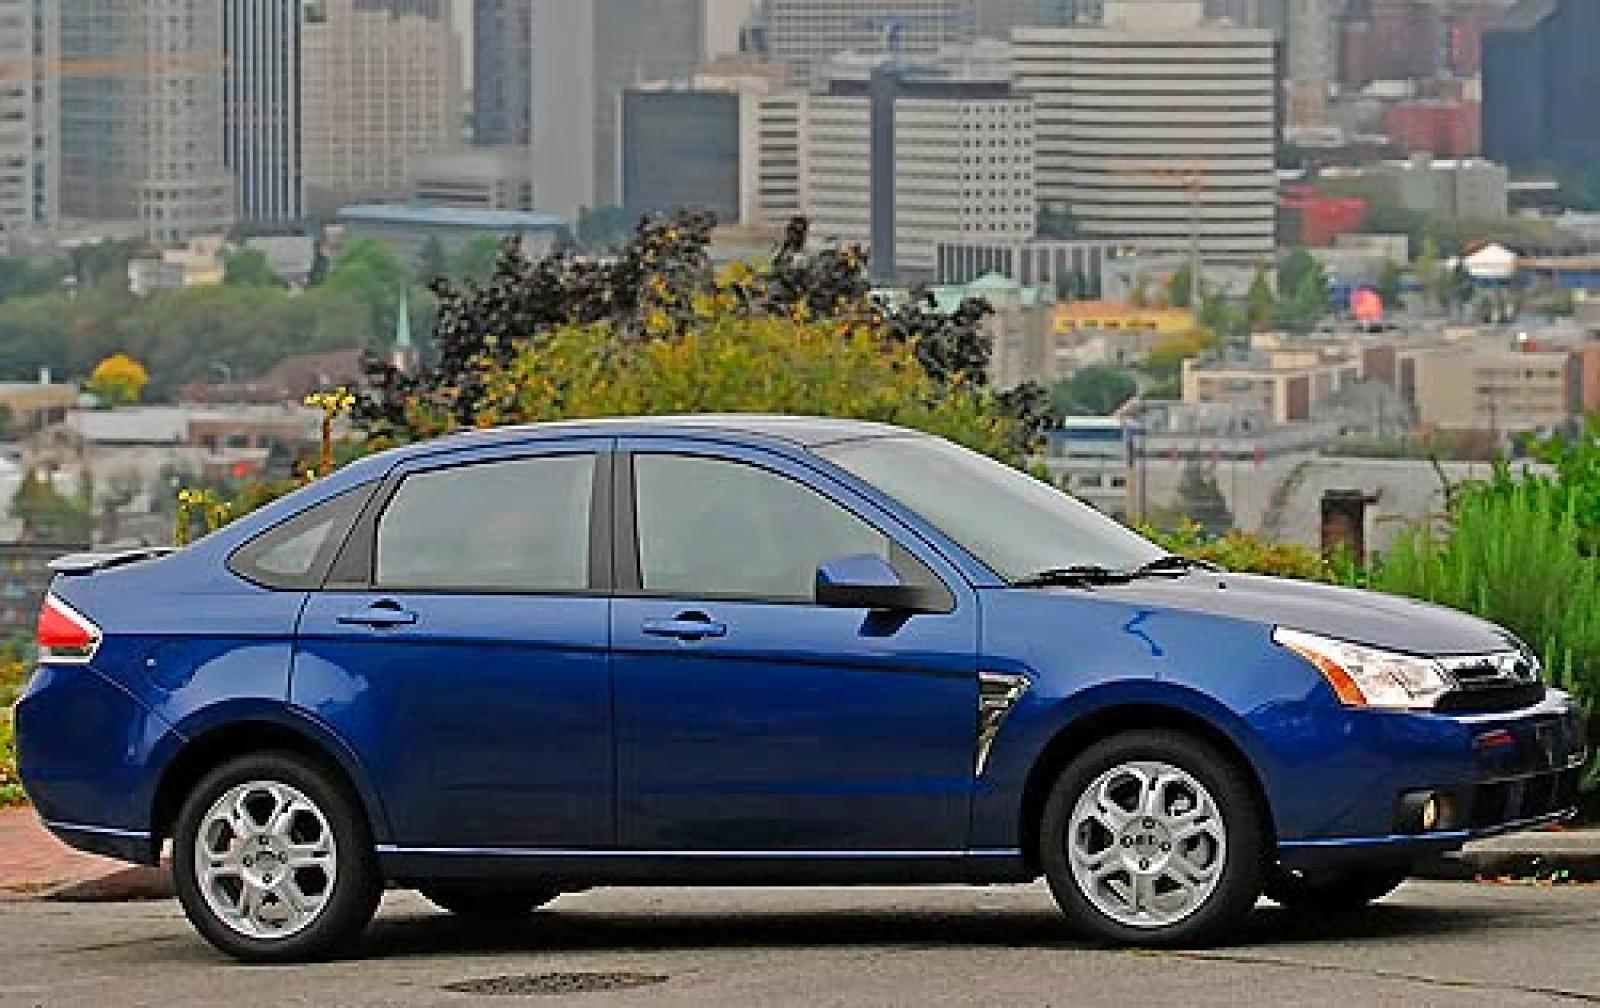 2008 ford focus information and photos zombiedrive. Black Bedroom Furniture Sets. Home Design Ideas